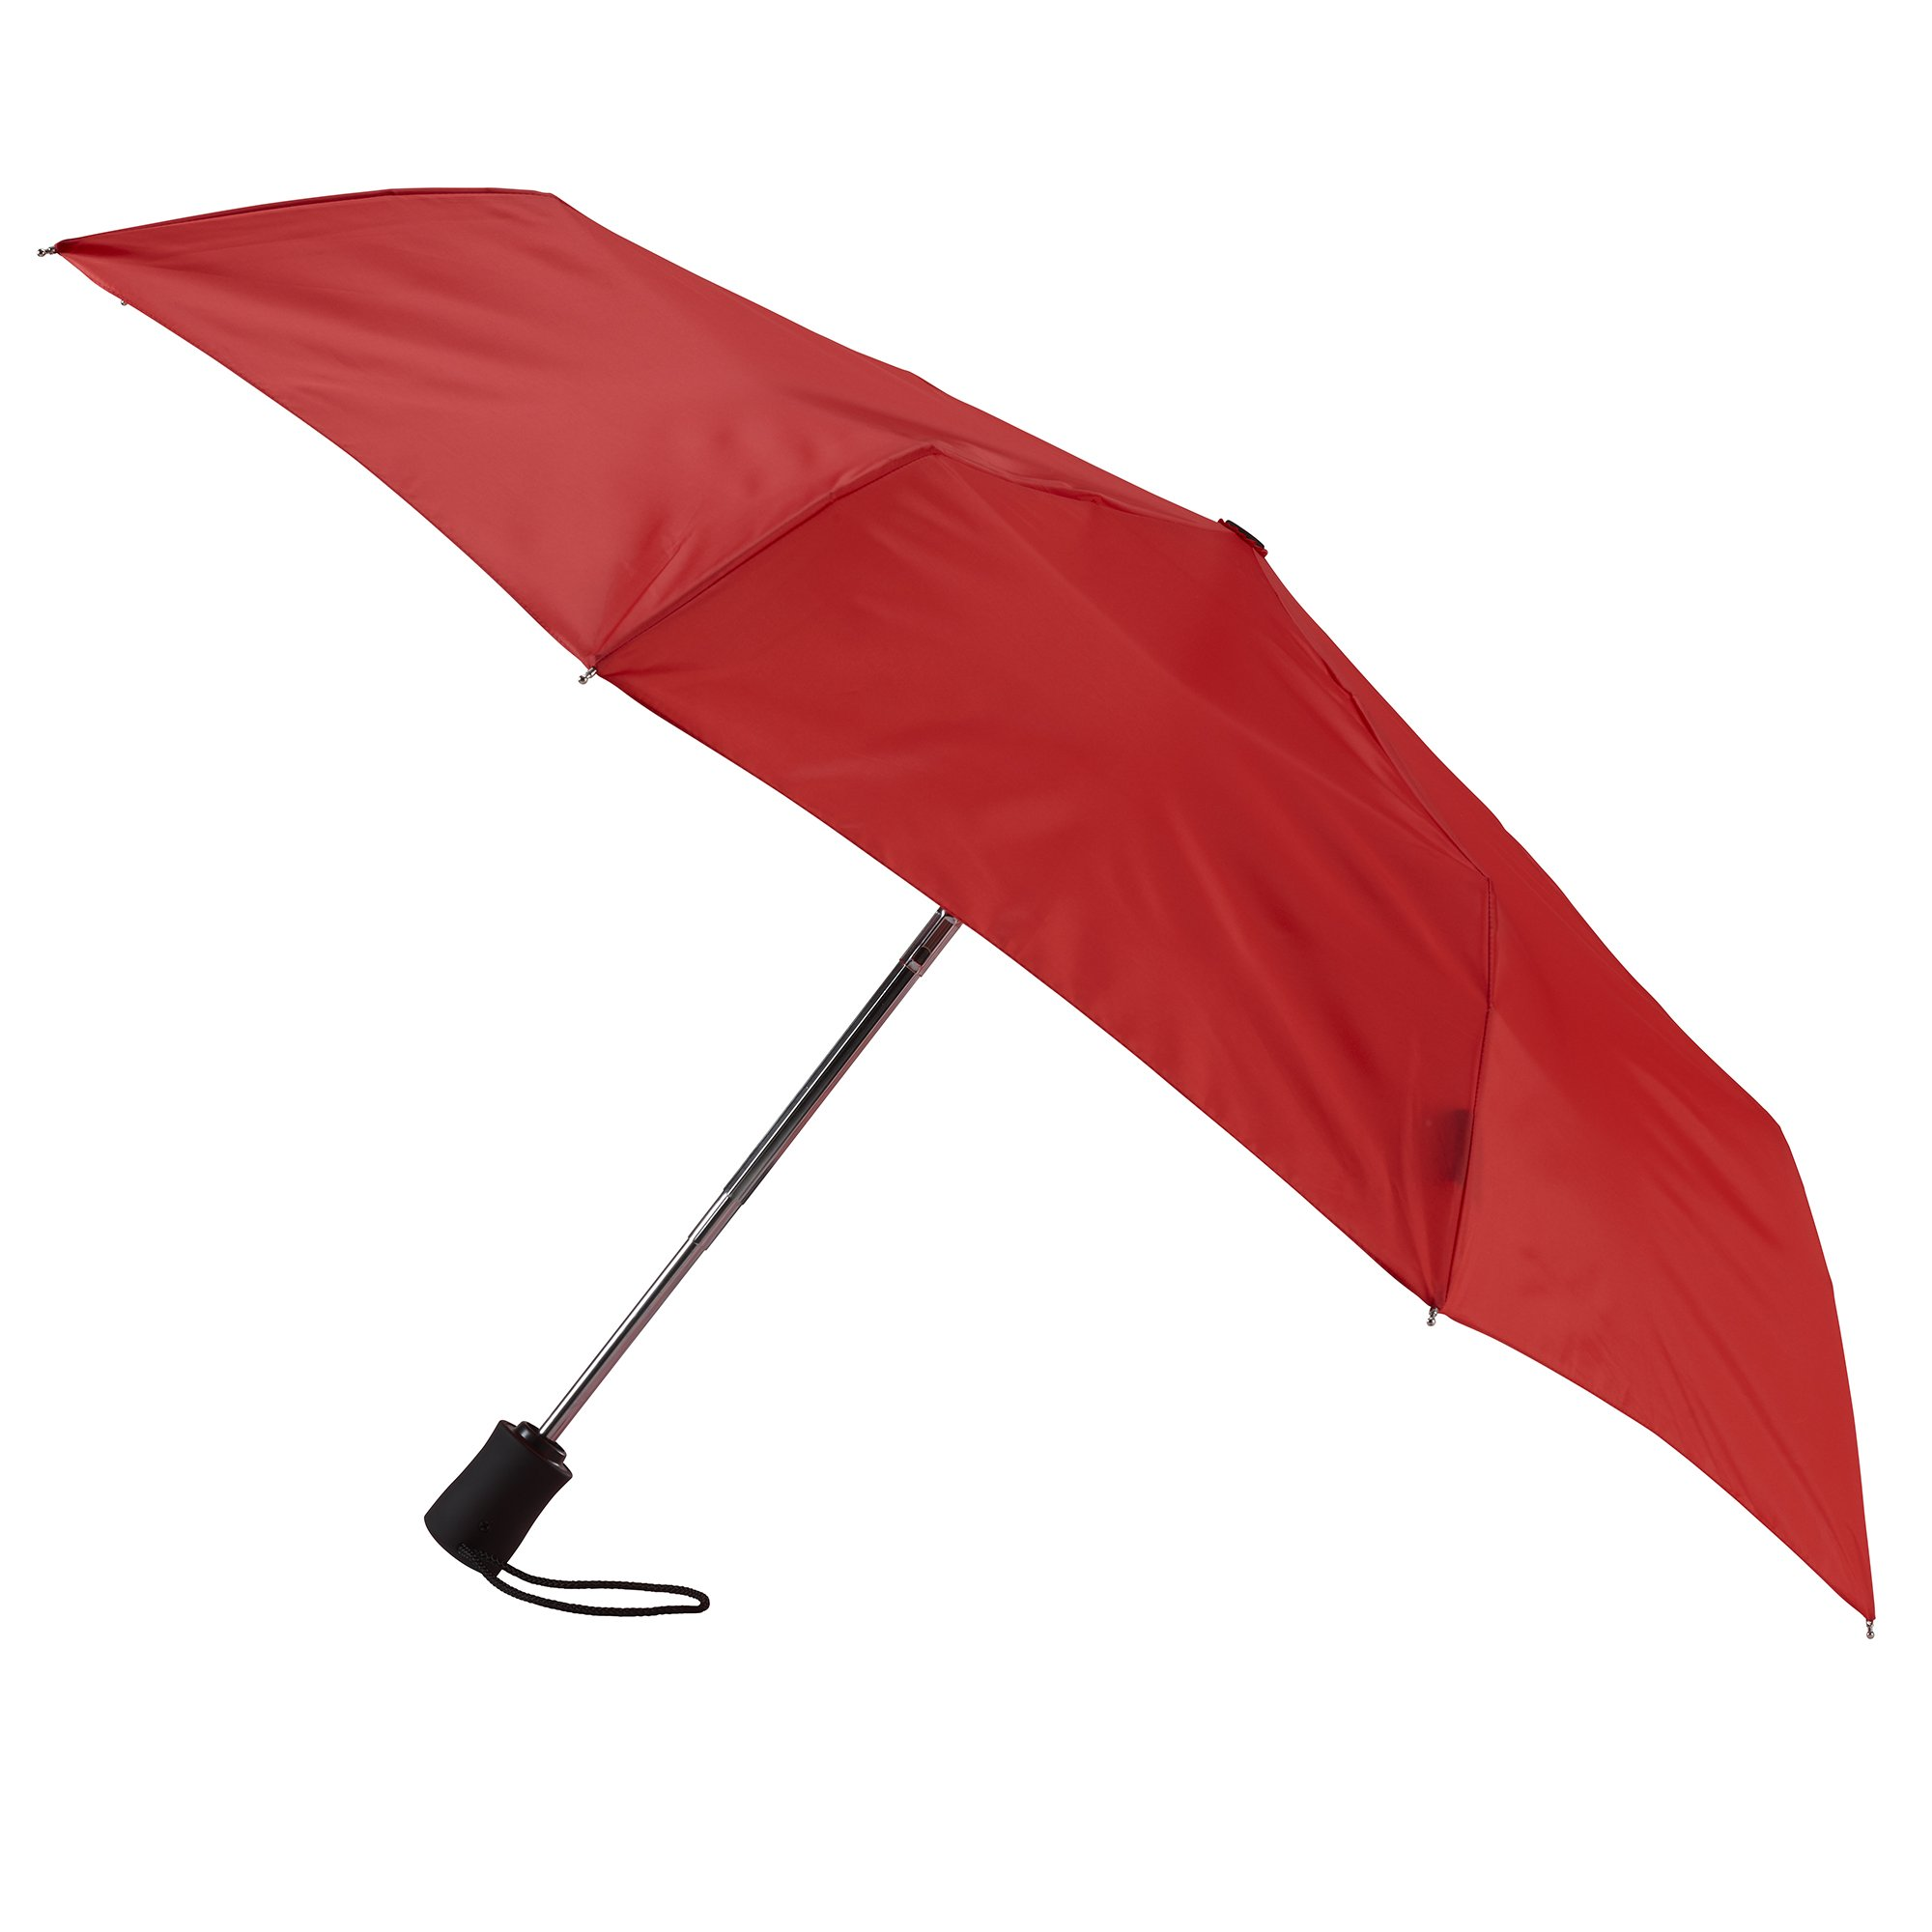 Lewis N. Clark Compact & Lightweight Travel Umbrella Opens & Closes Automatically, Red, One Size